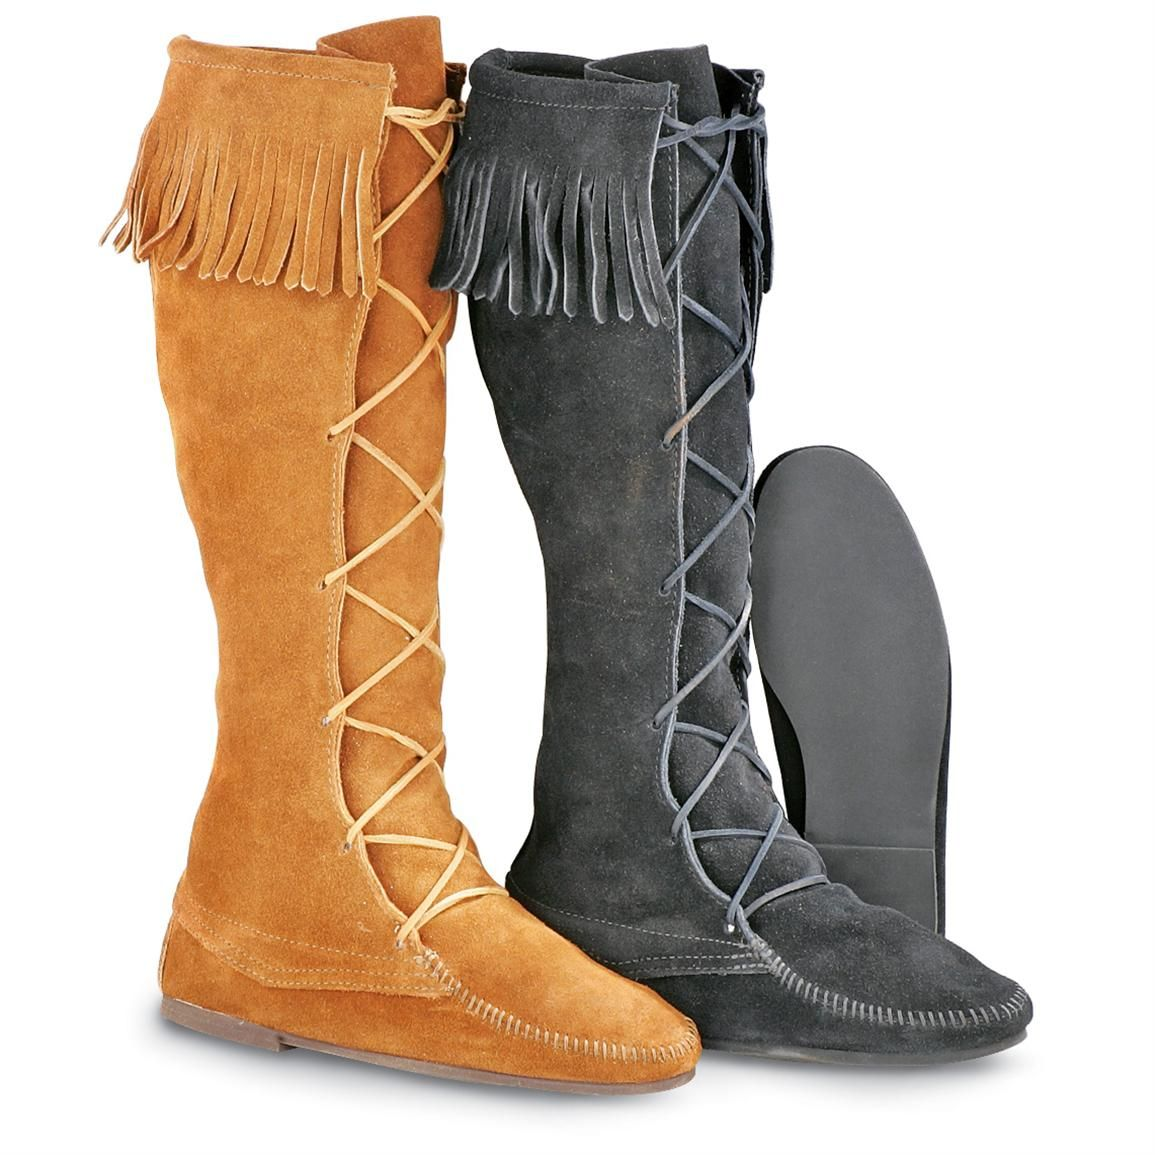 79b01ed097a2 Get deals of Minnetonka Men s Front Lace Knee Hi Fringe Boot and it will be  out of stock very quick! Description from moccasinsreviews.blogspot.com.